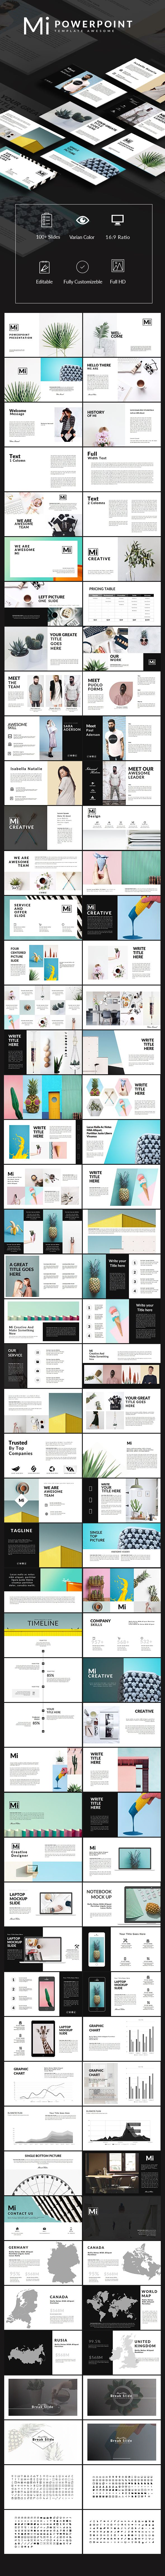 ideas about powerpoint presentations mi powerpoint multipurpose template powerpoint templates